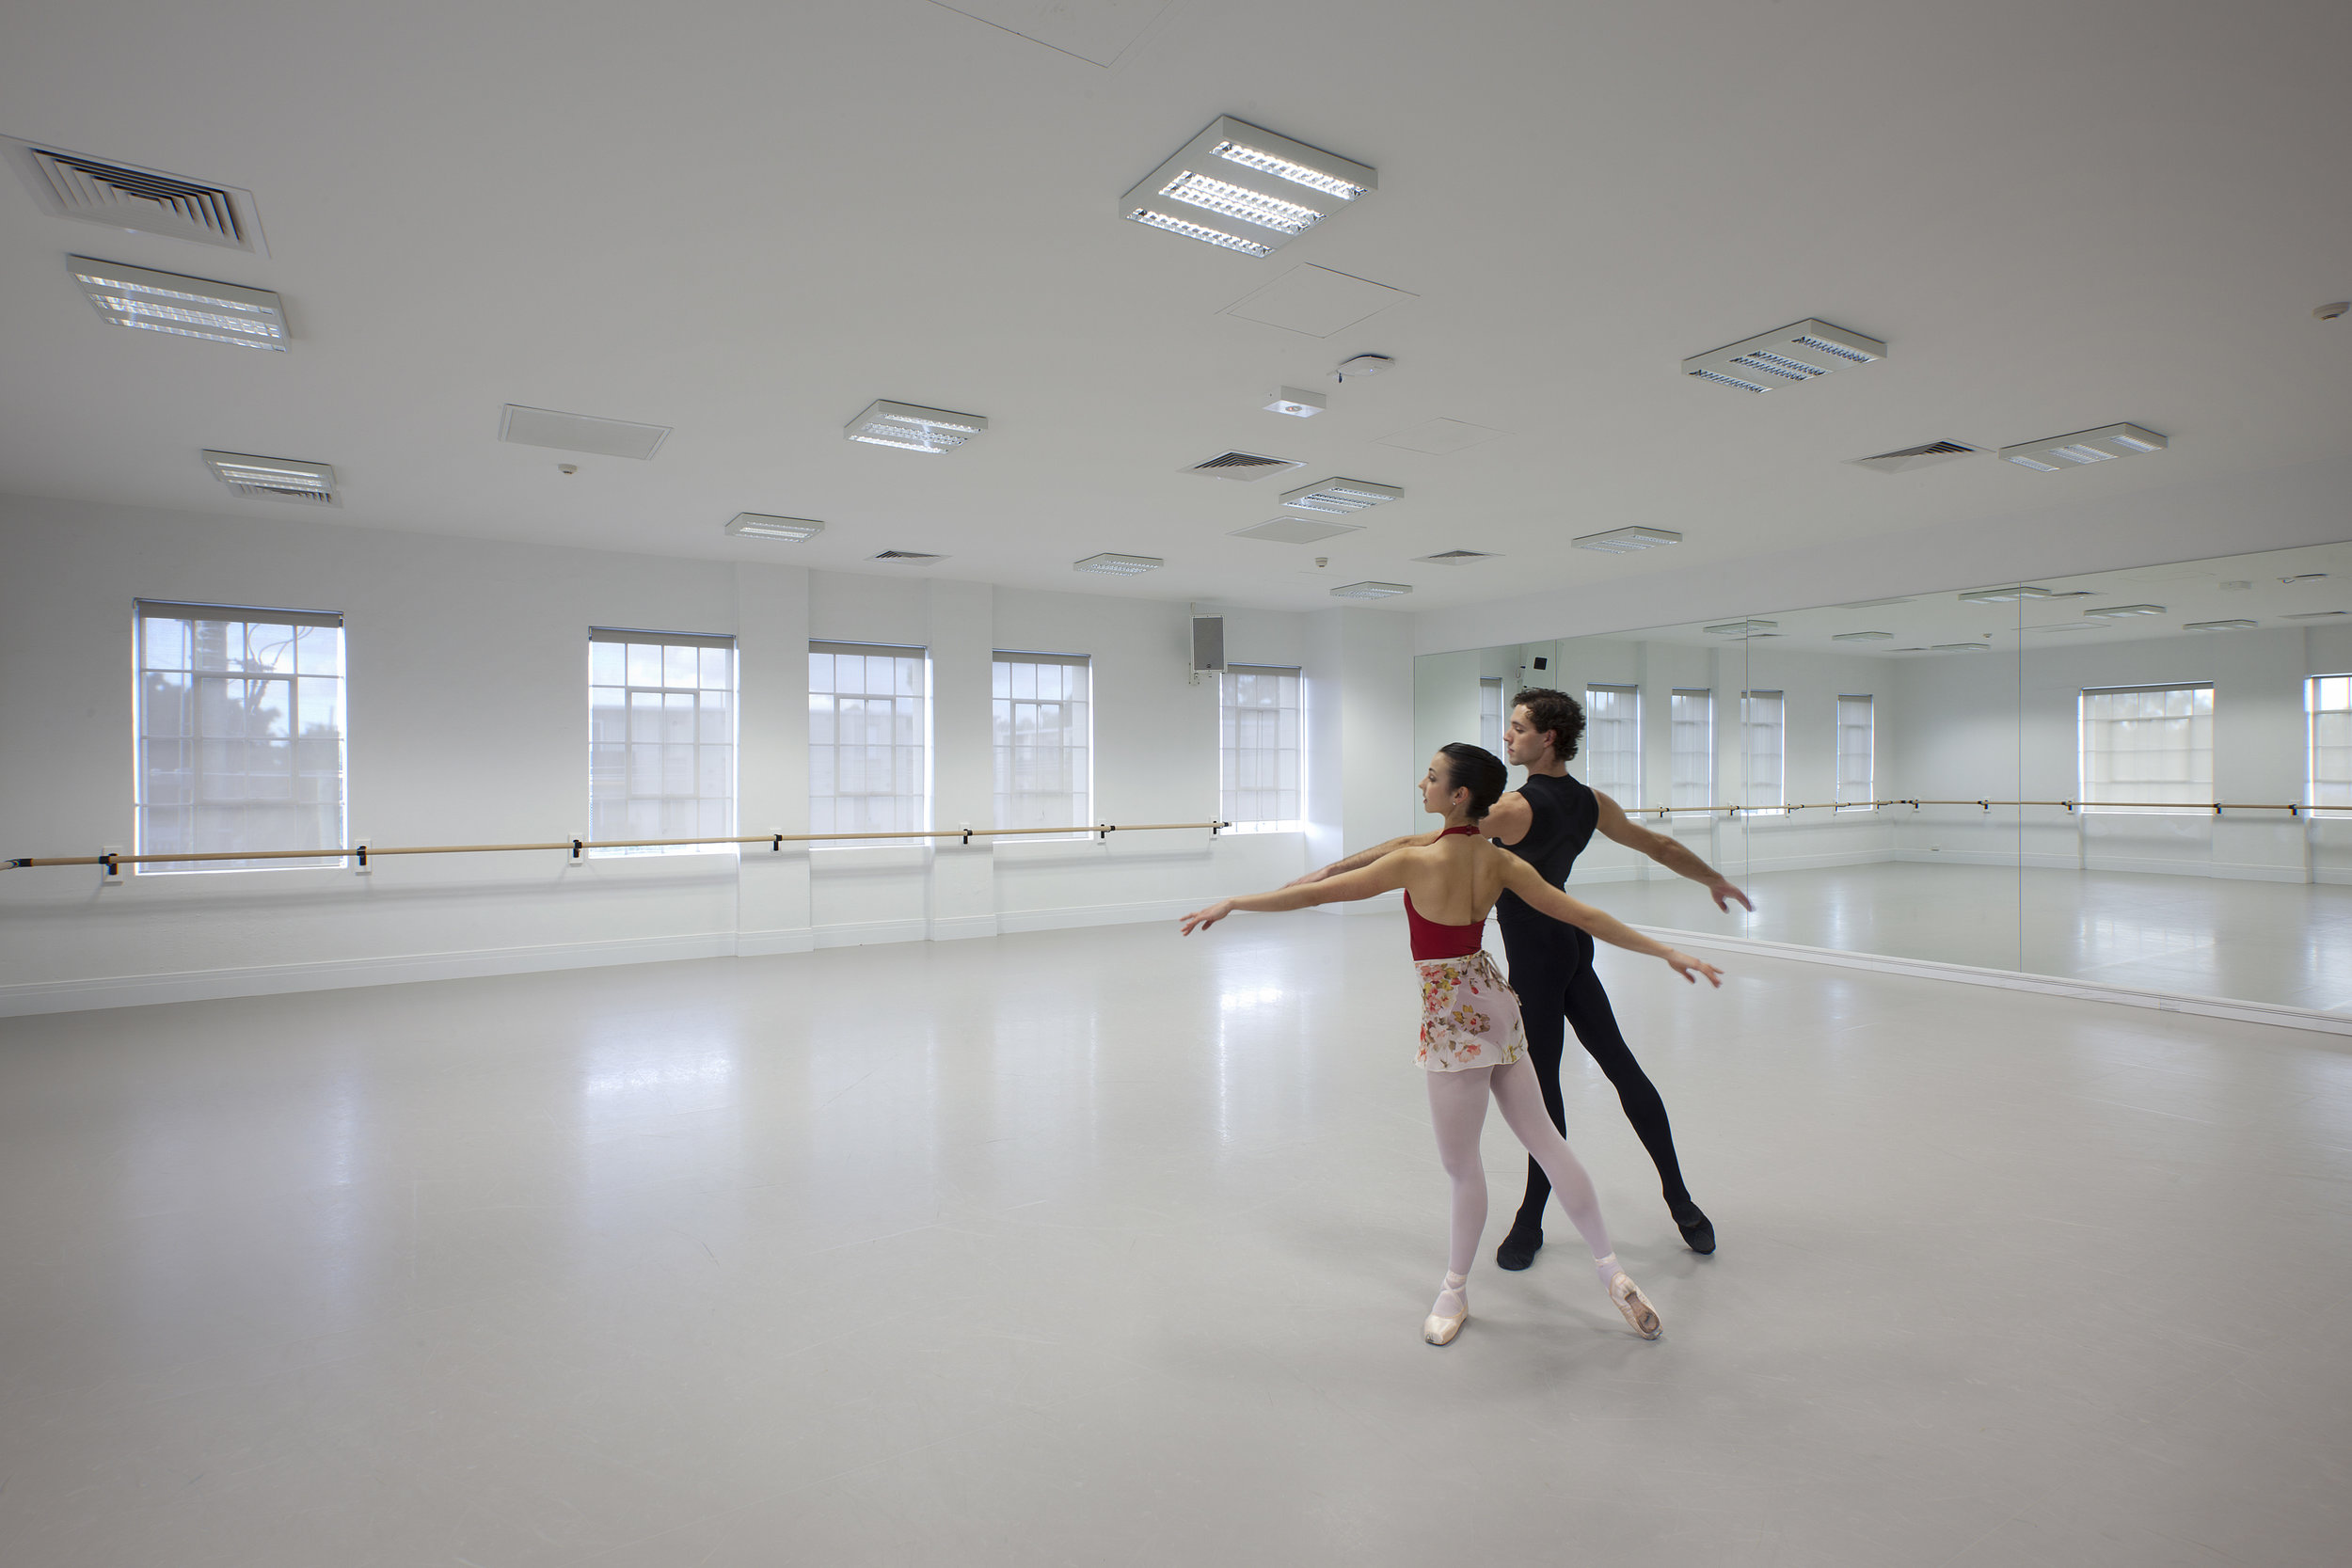 A spring in their step. - In order to prevent dancer injury, we created one of the world's most advanced sprung floor systems – in the 100-year-old section of the building over the original Jarrah timber floor structure. The floor was successfully installed with a large team of consultants, product suppliers and contractors, and the WA Ballet are reporting fewer injuries.